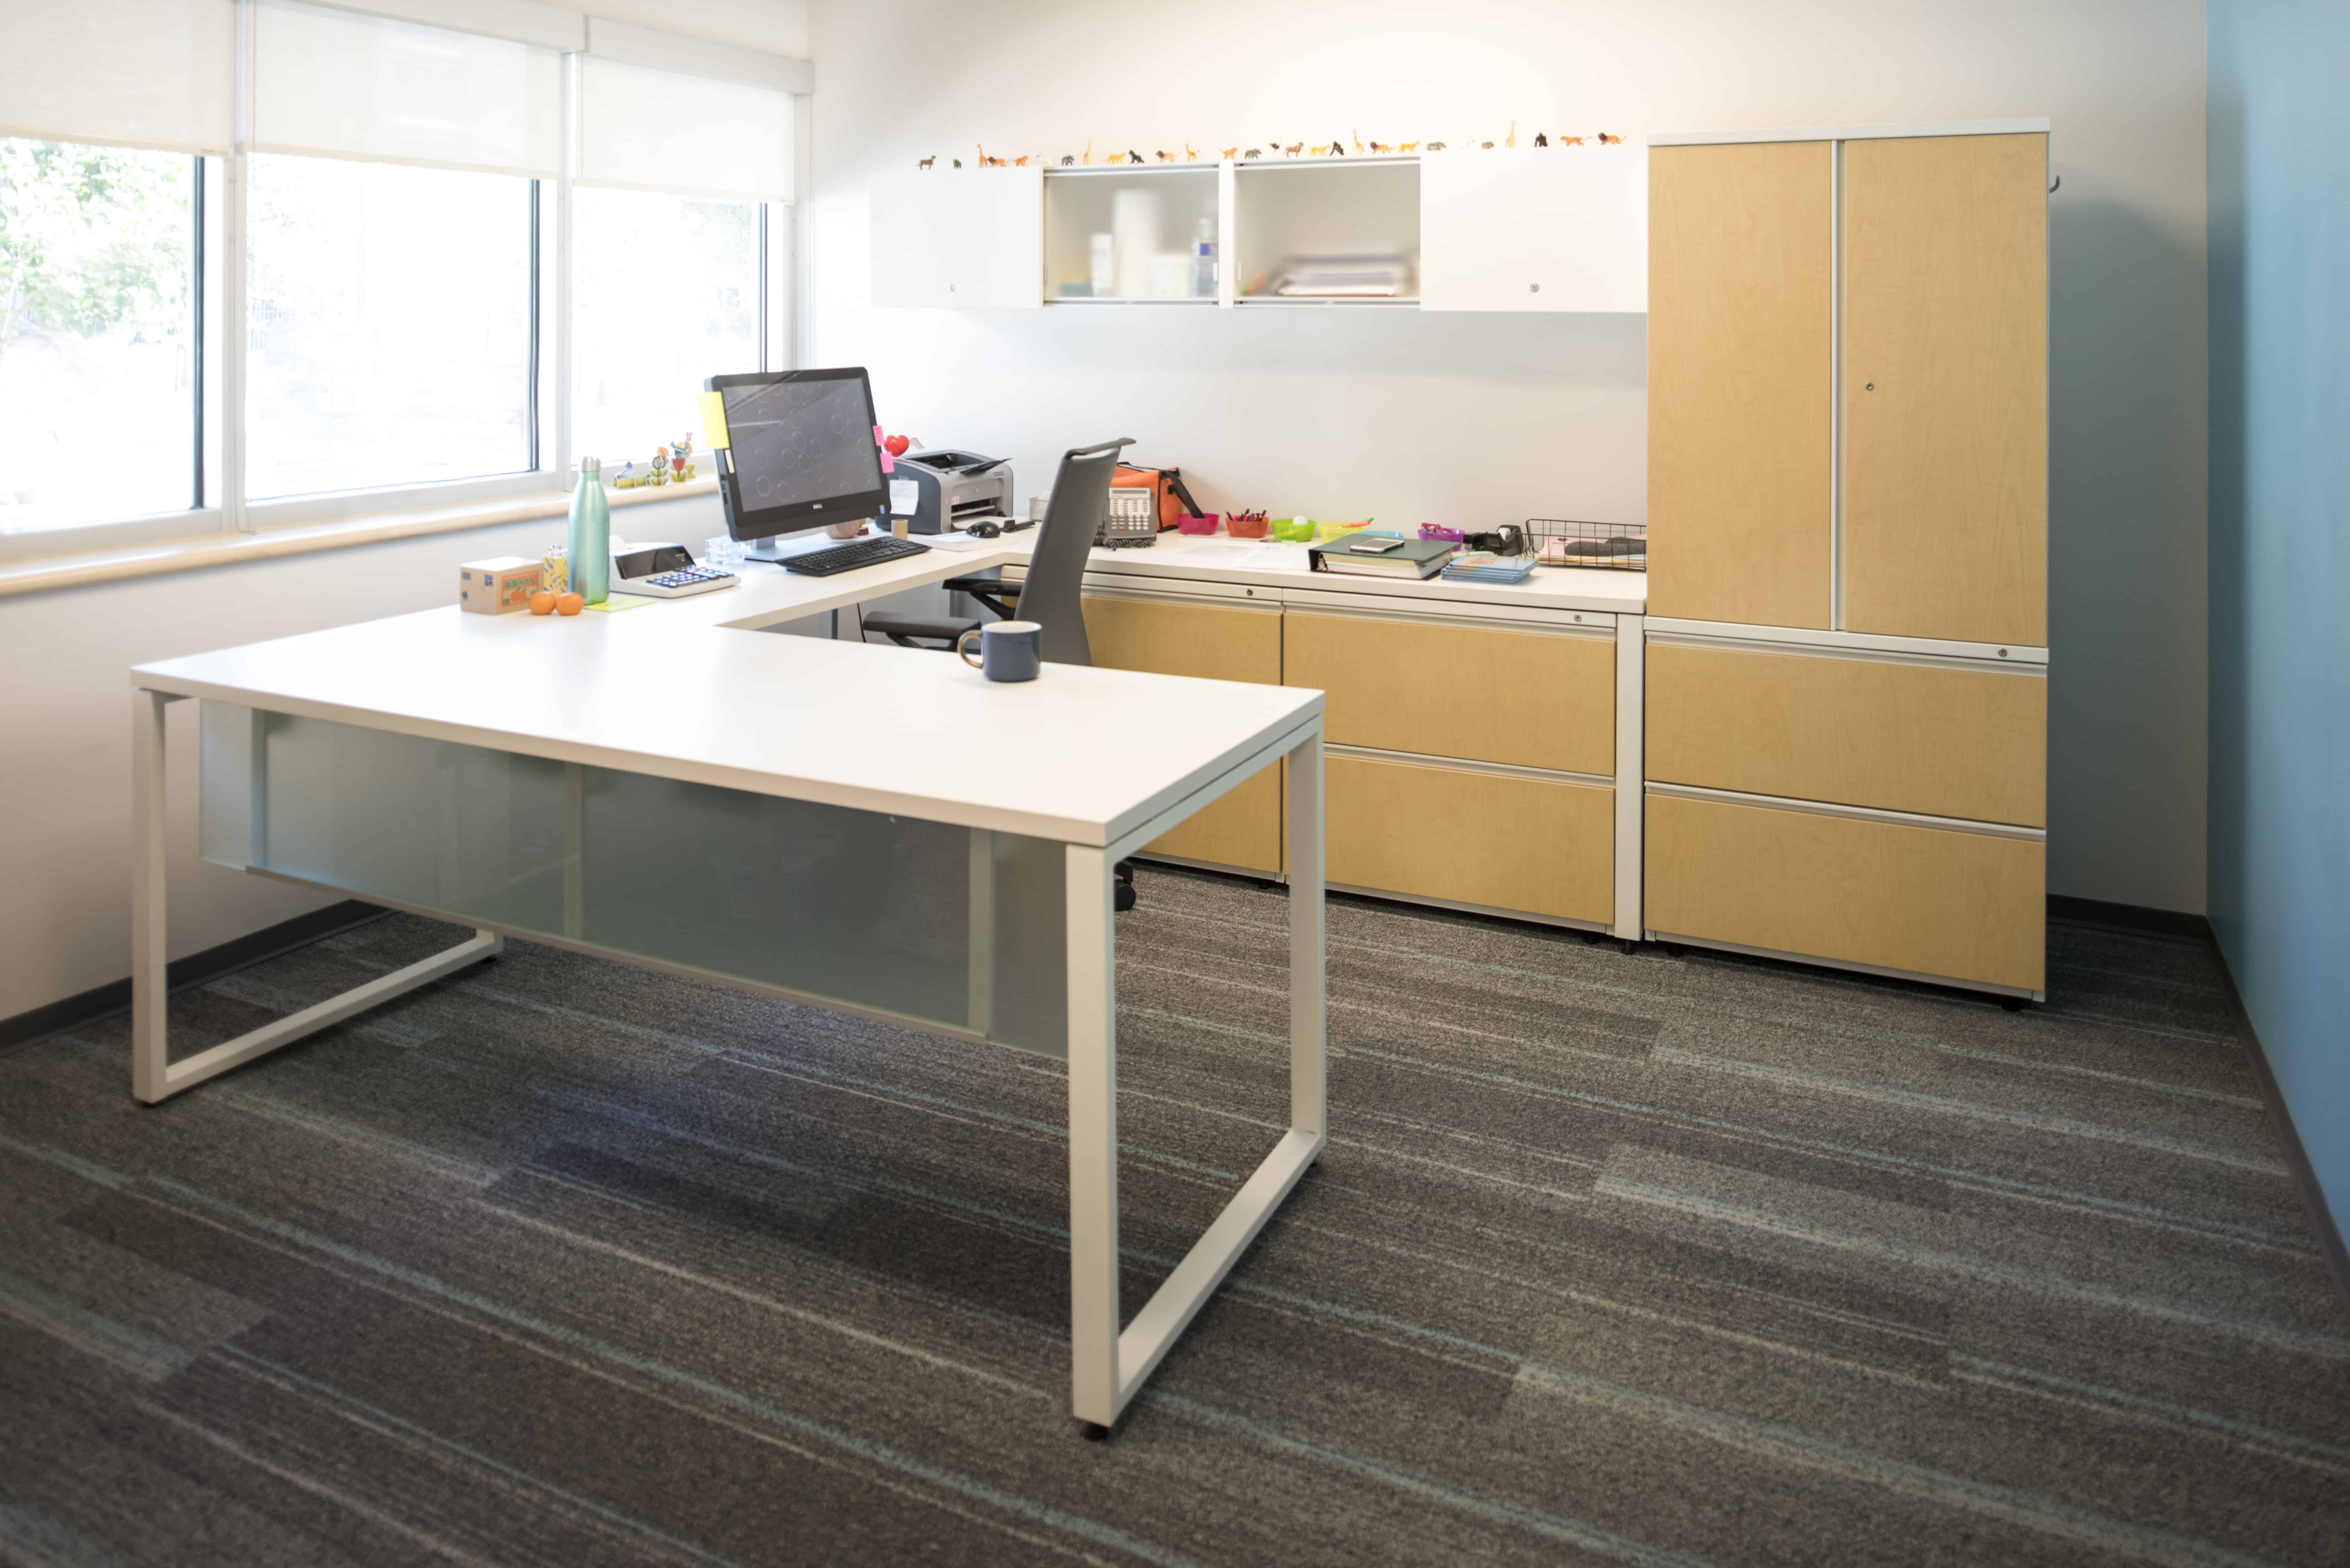 Private office commercial interior space St. Pauls School